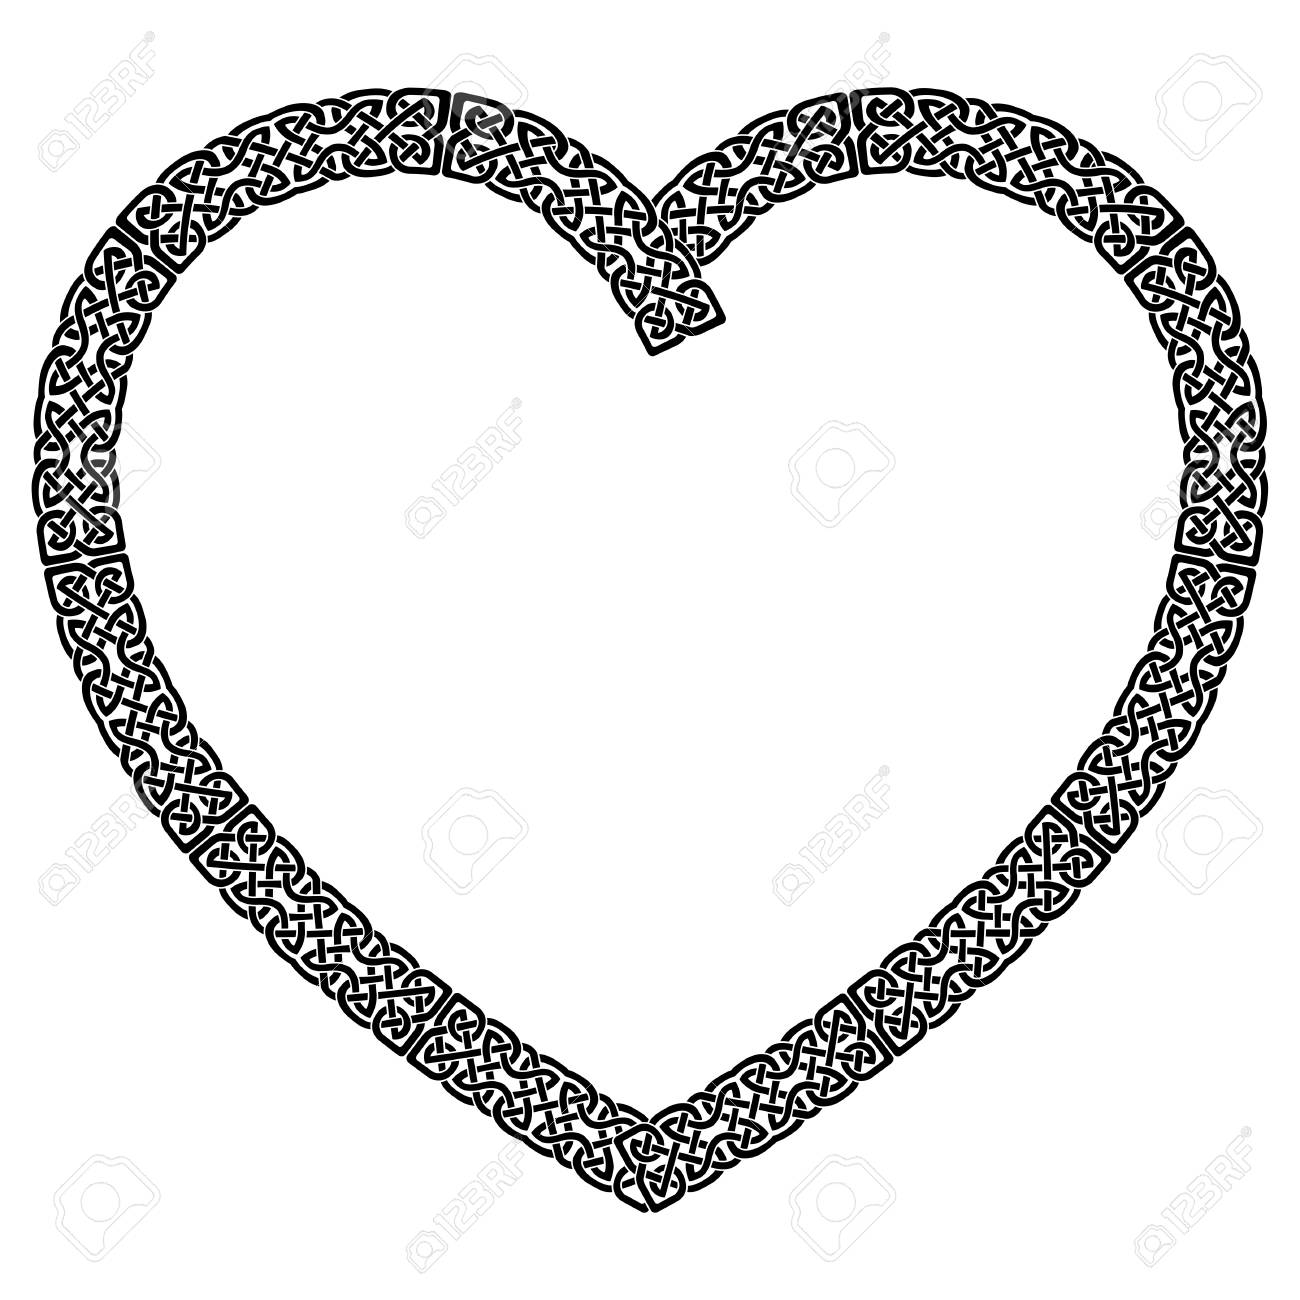 Black celtic style knotted heart with eternity knot pattern black celtic style knotted heart with eternity knot pattern inspired by irish st patricks day buycottarizona Image collections